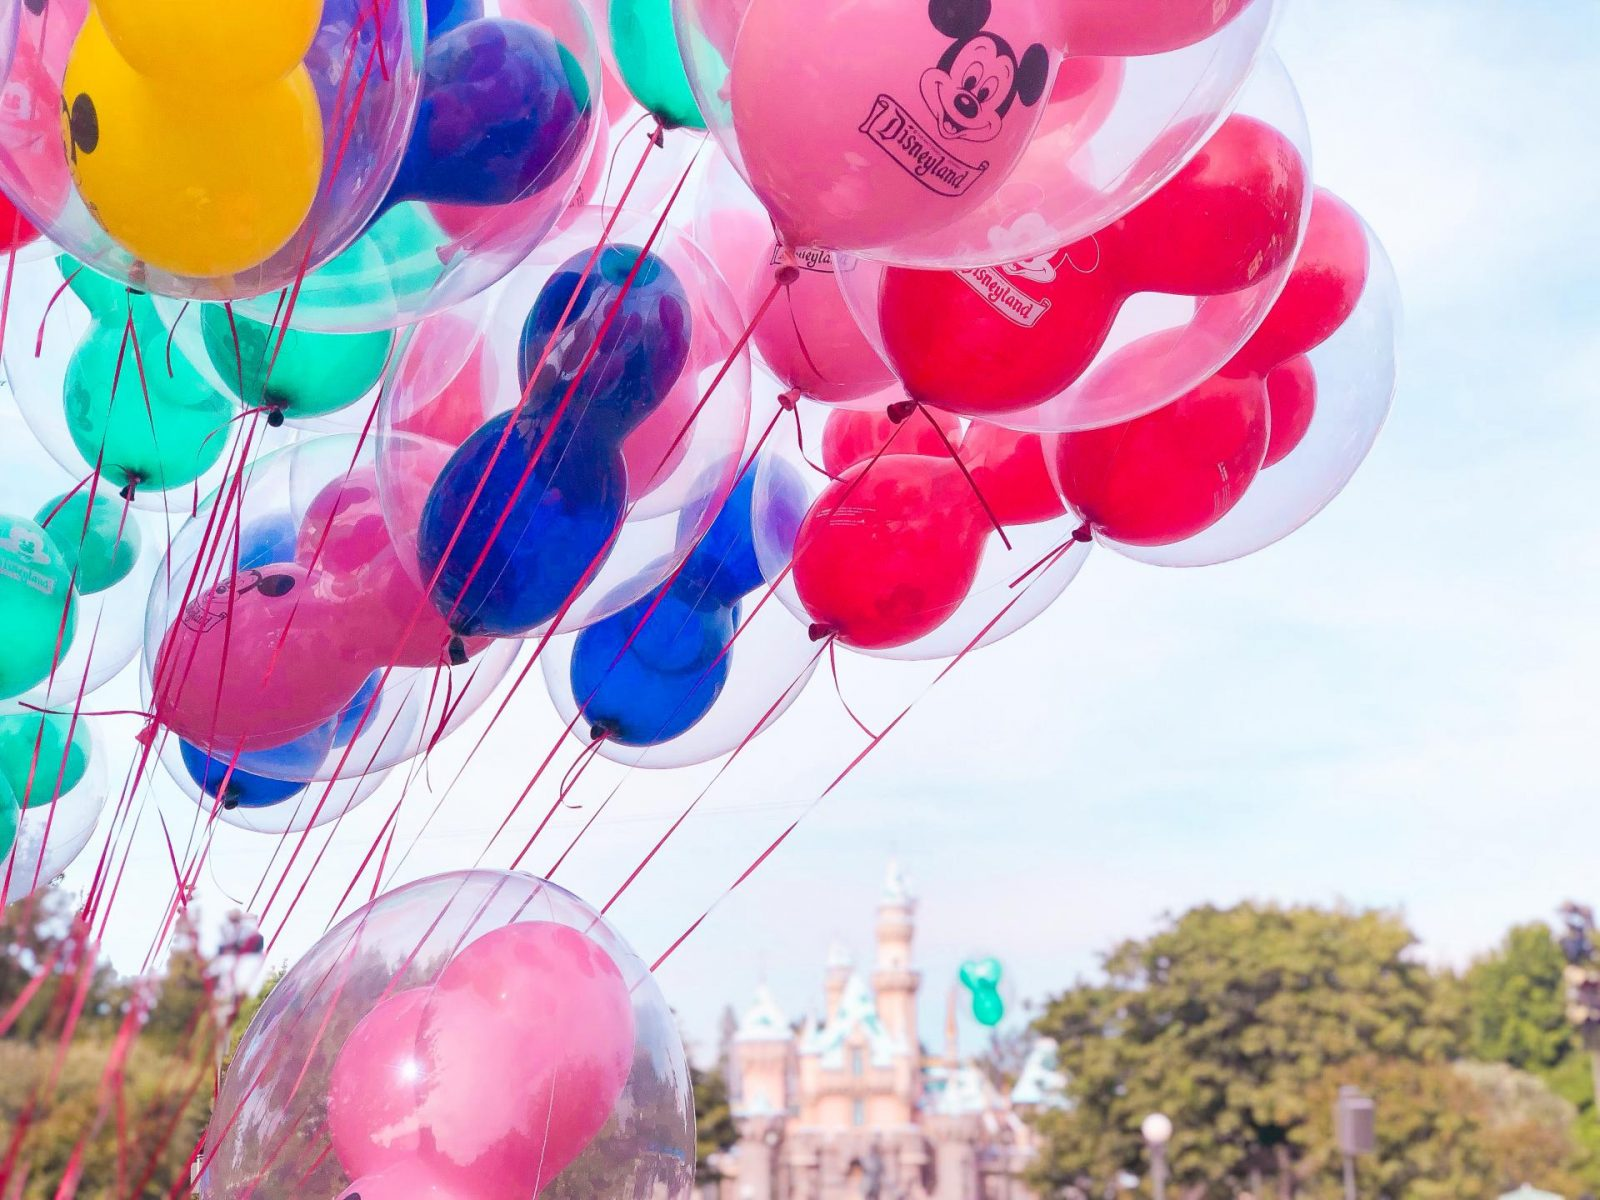 10 Must Do's at Disneyland for First-Timers - Mickey Balloons